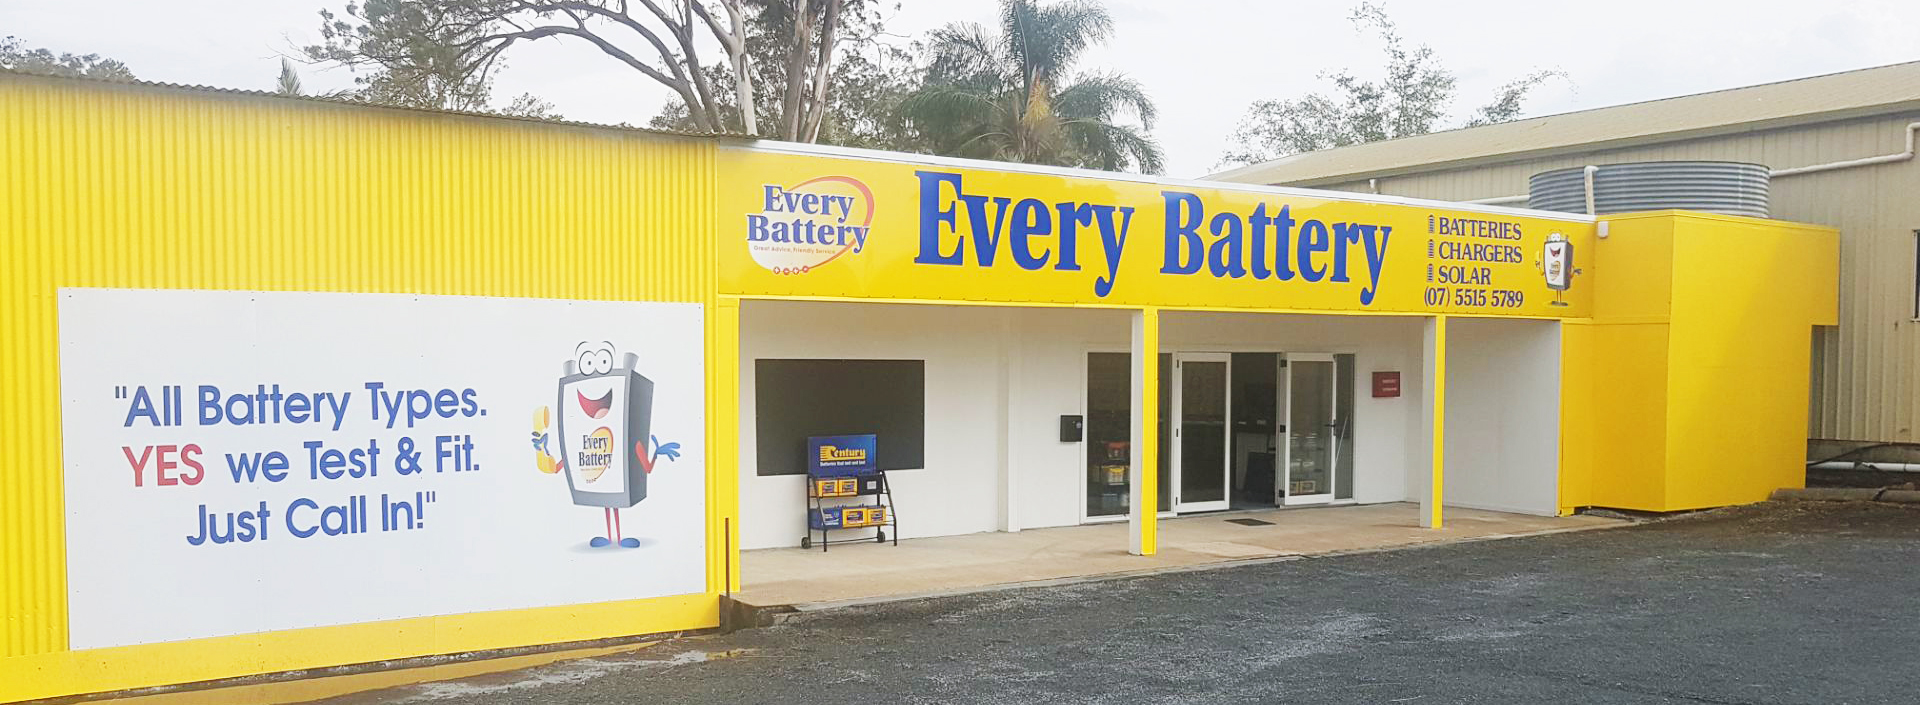 Every Battery Pimpama QLD store